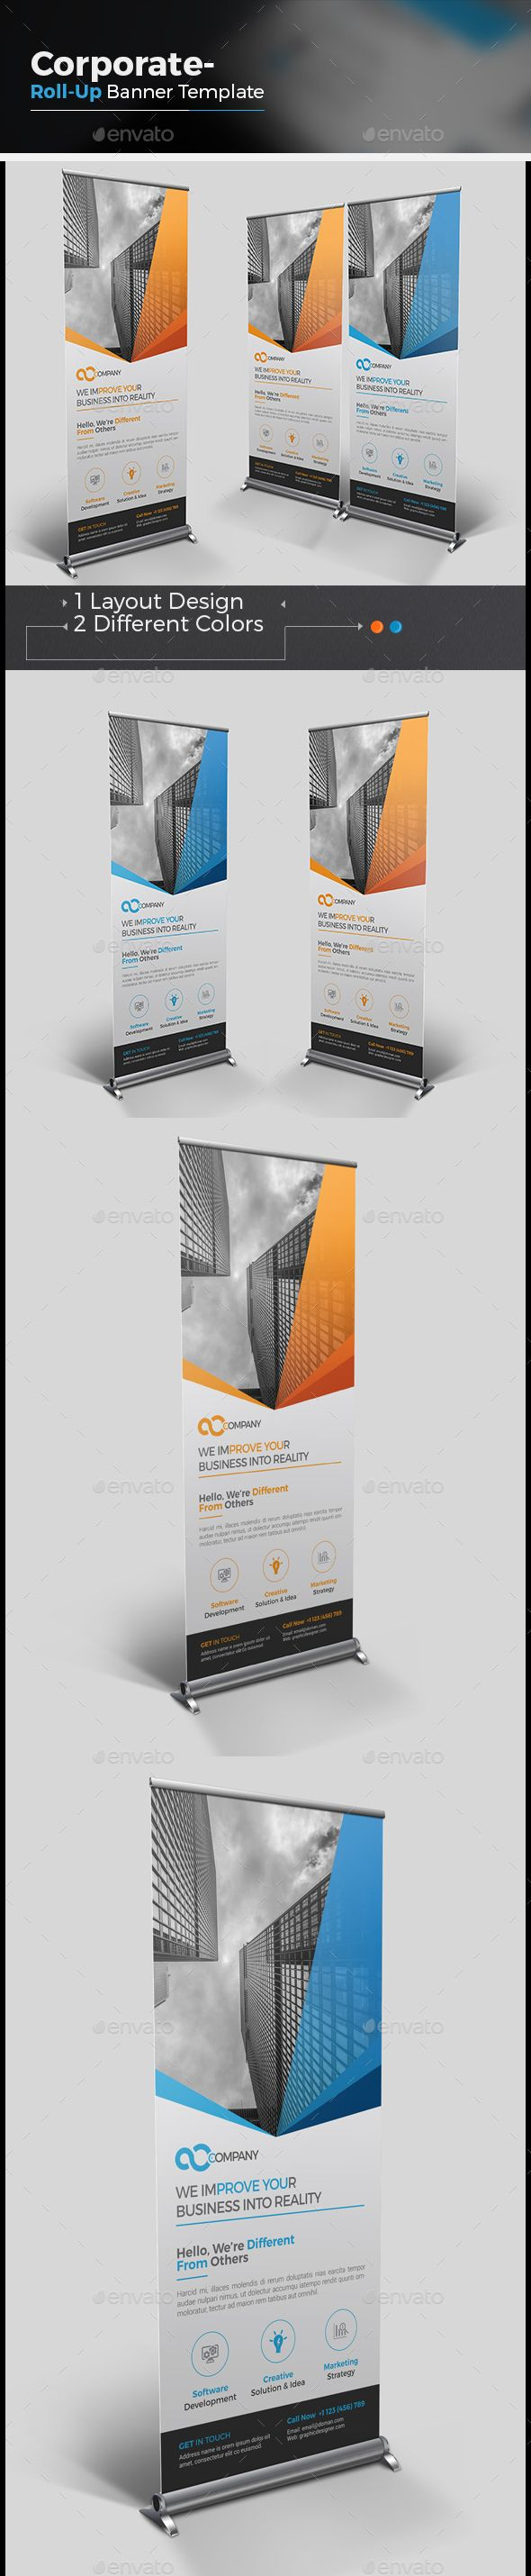 Corporate Roll-up Banner | Rollup banner, Ai illustrator and Banner ...